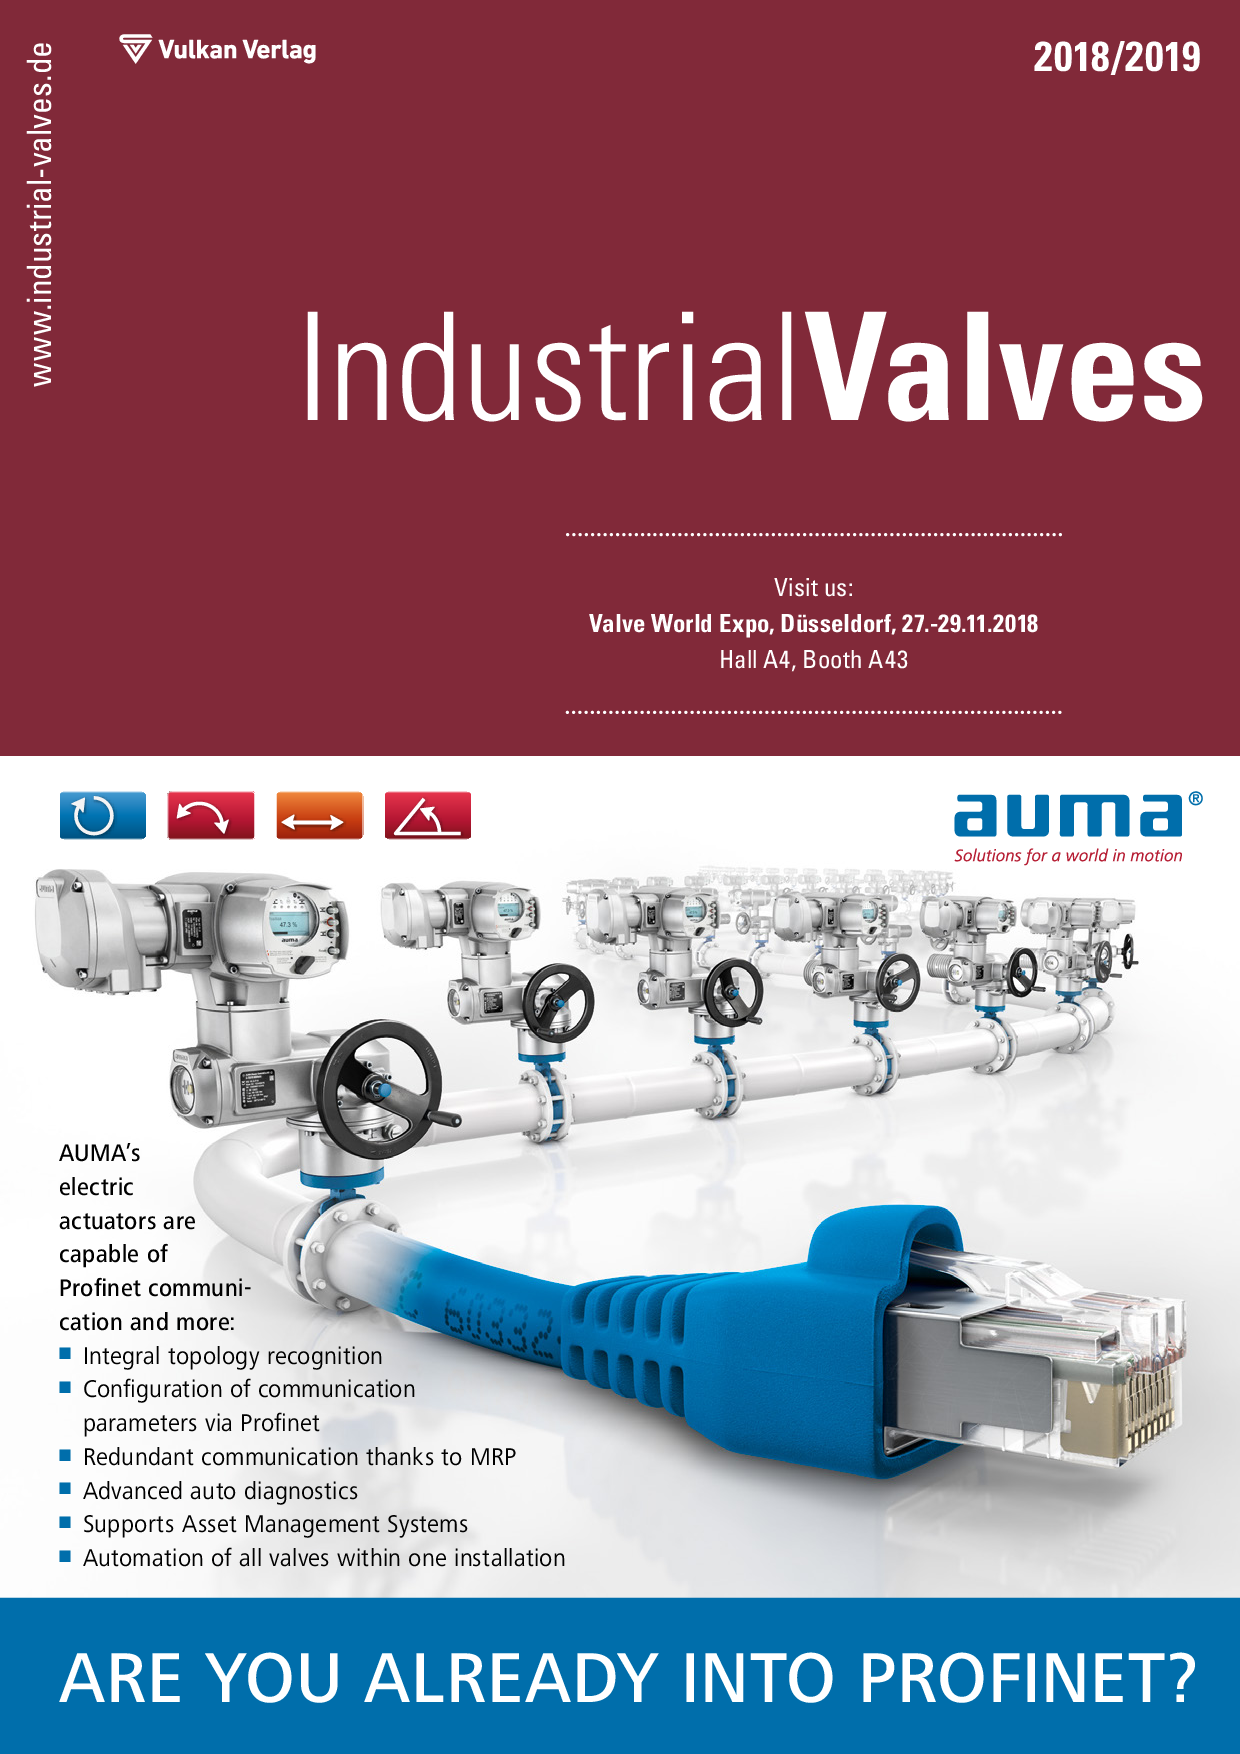 Industrial Valves 2018/2019